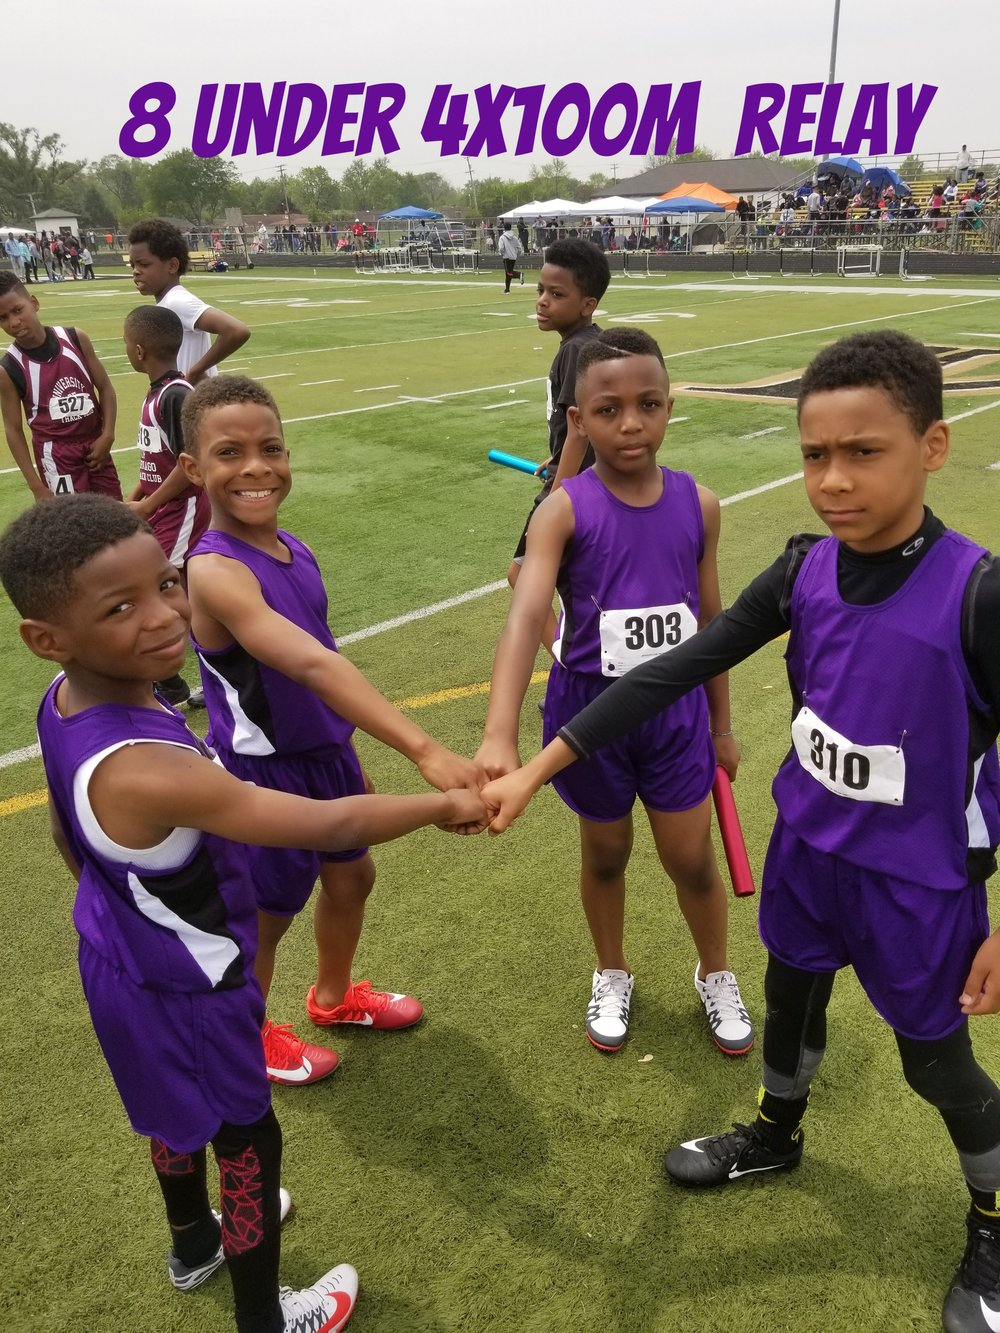 8 & Under 4x100m Meet Champion, Martez, Xavier, Te'Jon, Zaven